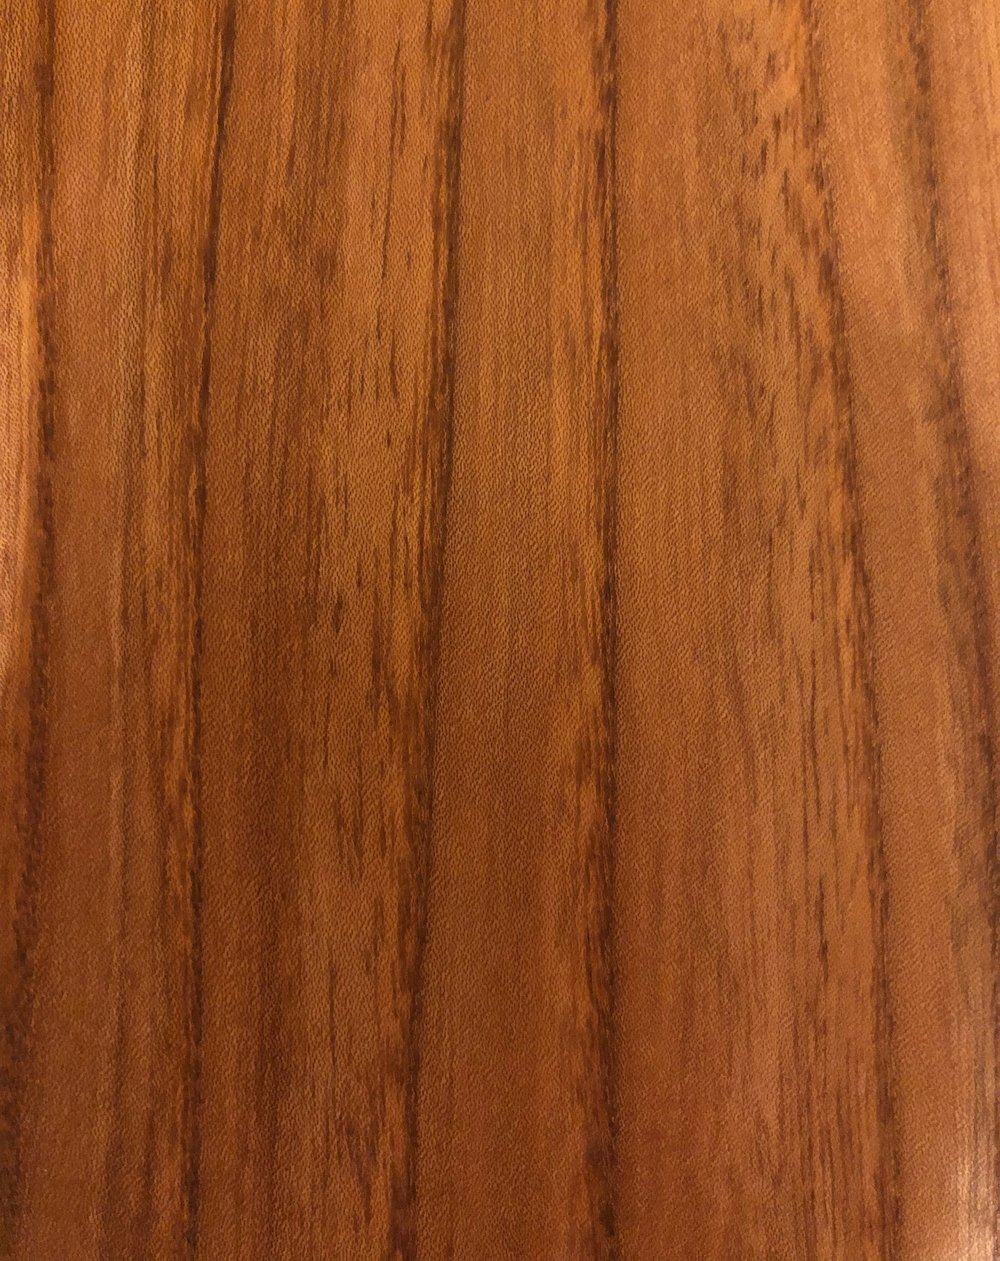 Elm - Ulmus Americana - Elm is a mid brown coloured hardwood with a tight interlocking grain with patterned ridges.Not traditionally used, however it is one of our favourite woods to work with. It has good tone with great looks and looks incredible when made up into a guitar body.It has a warm tone with good sustain.